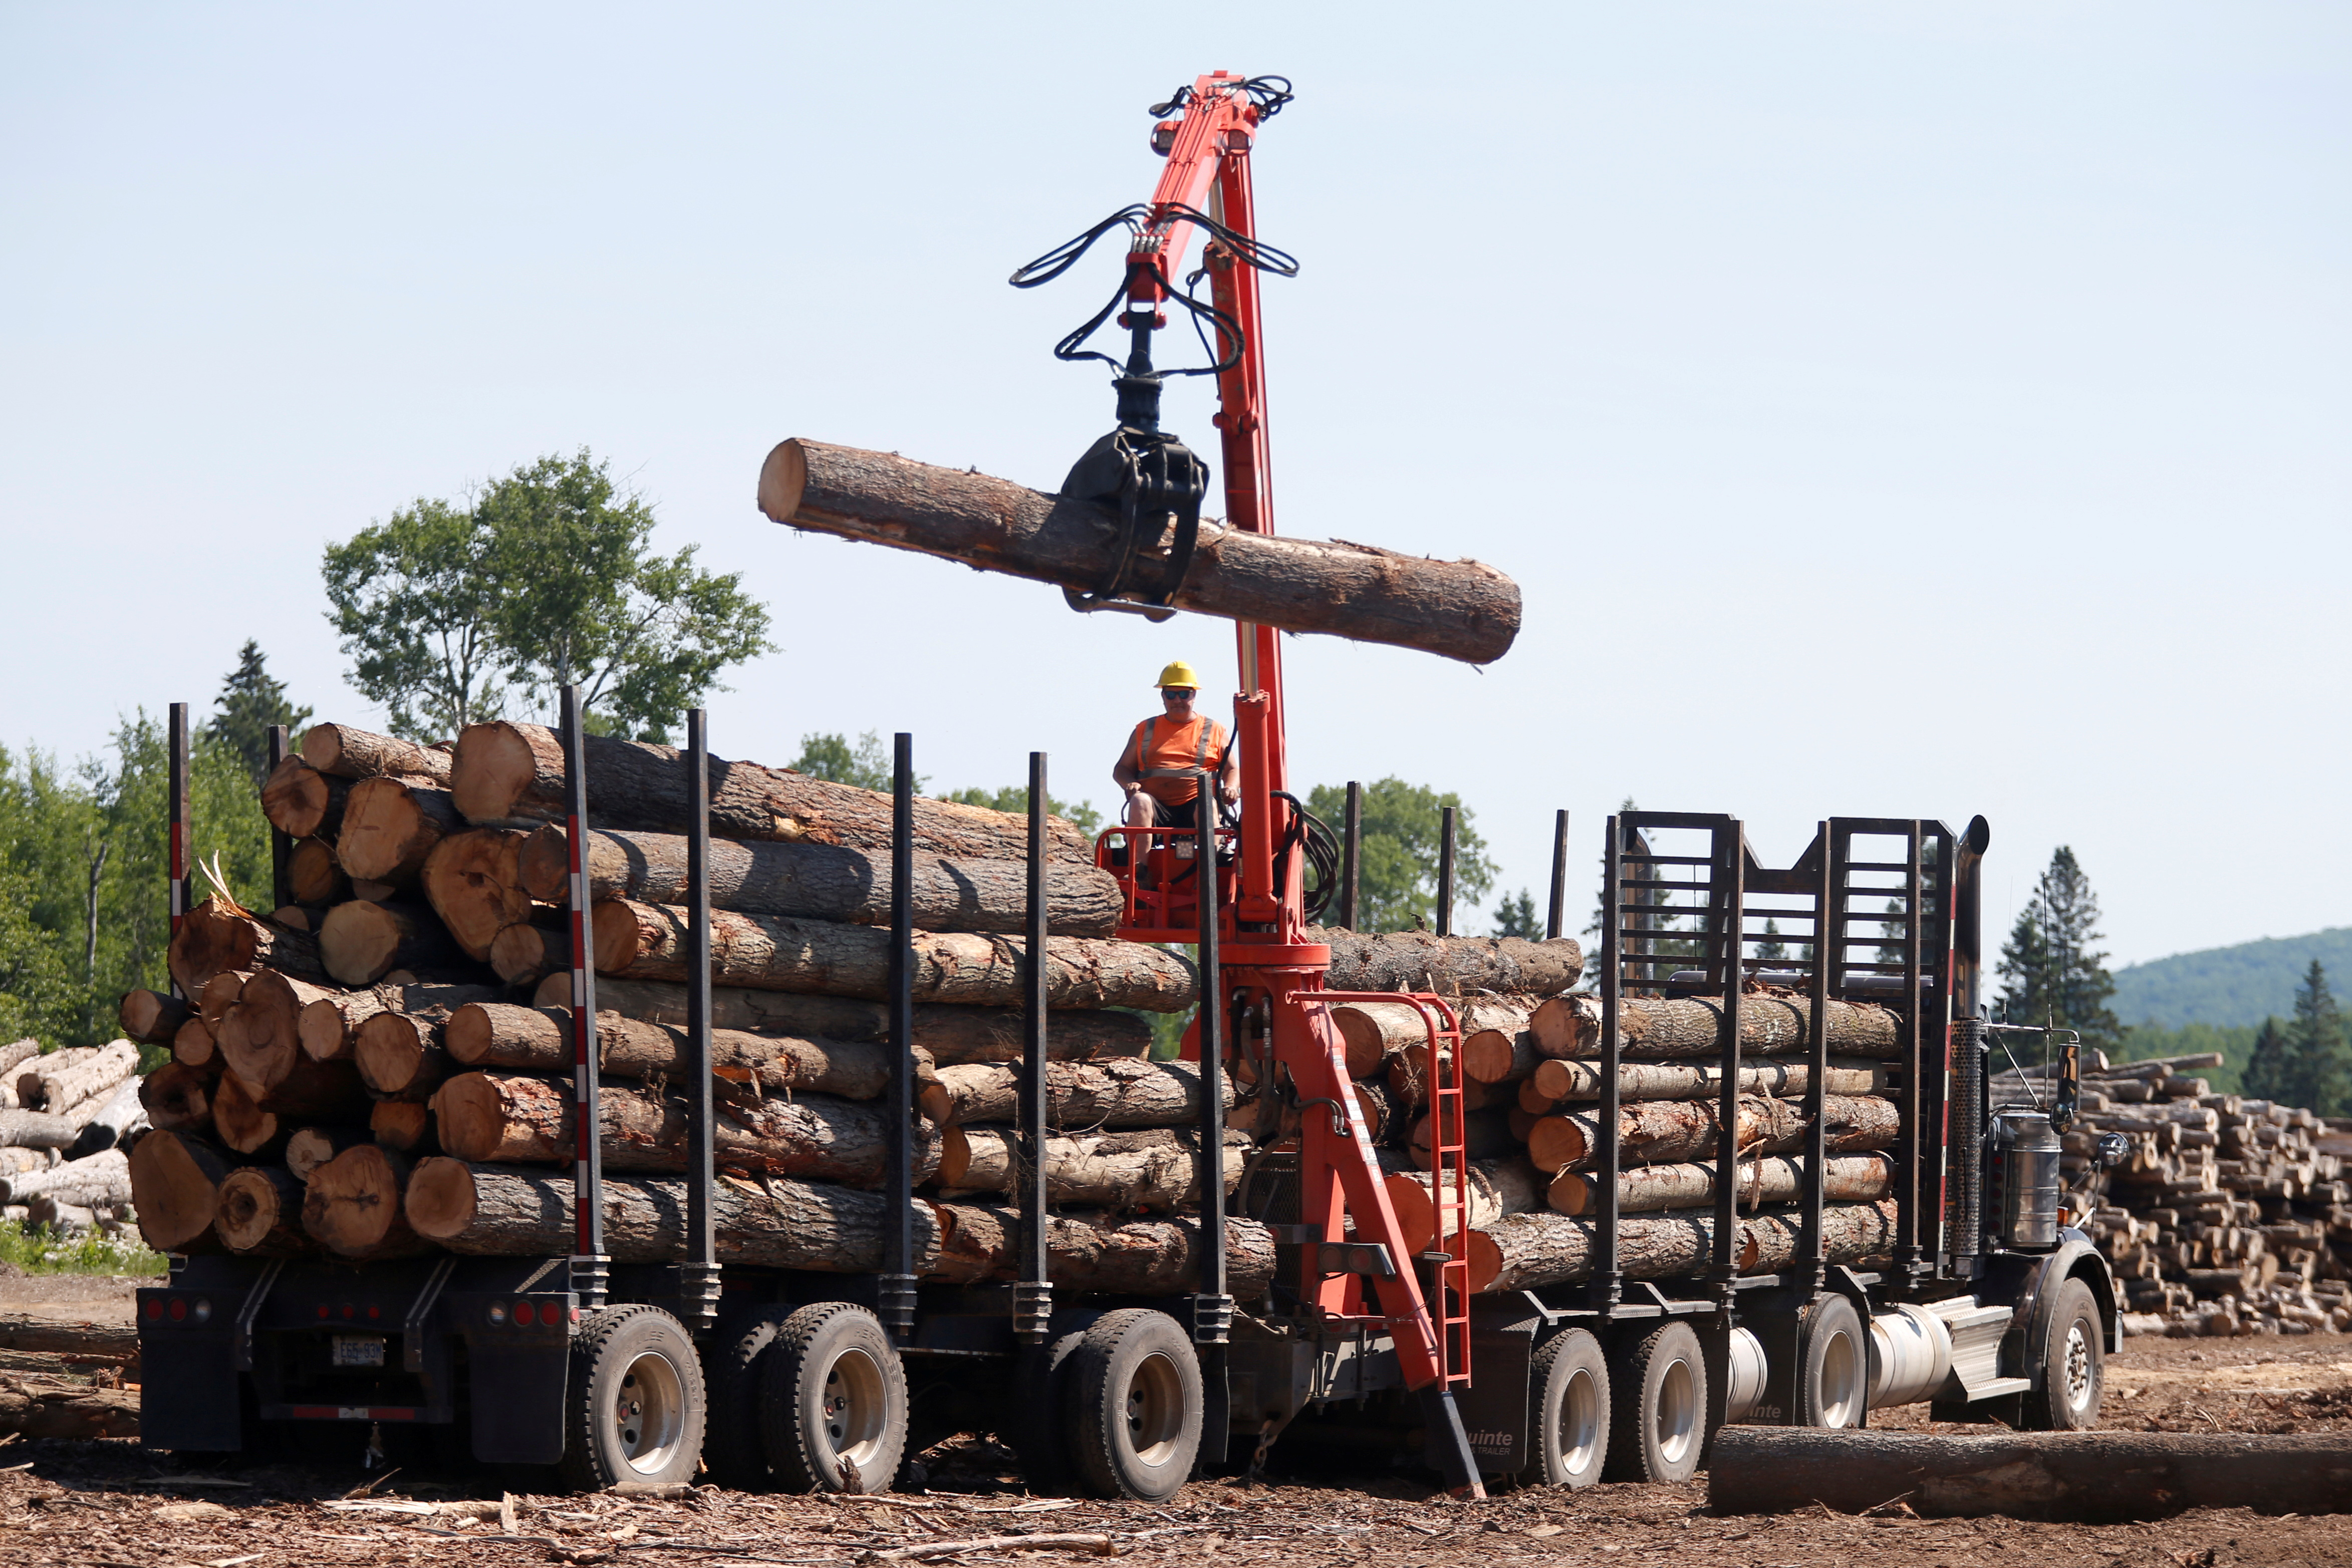 A worker unloads logs at the Murray Brothers Lumber Company in Madawaska, Ontario, Canada, July 4, 2018. REUTERS/Chris Wattie